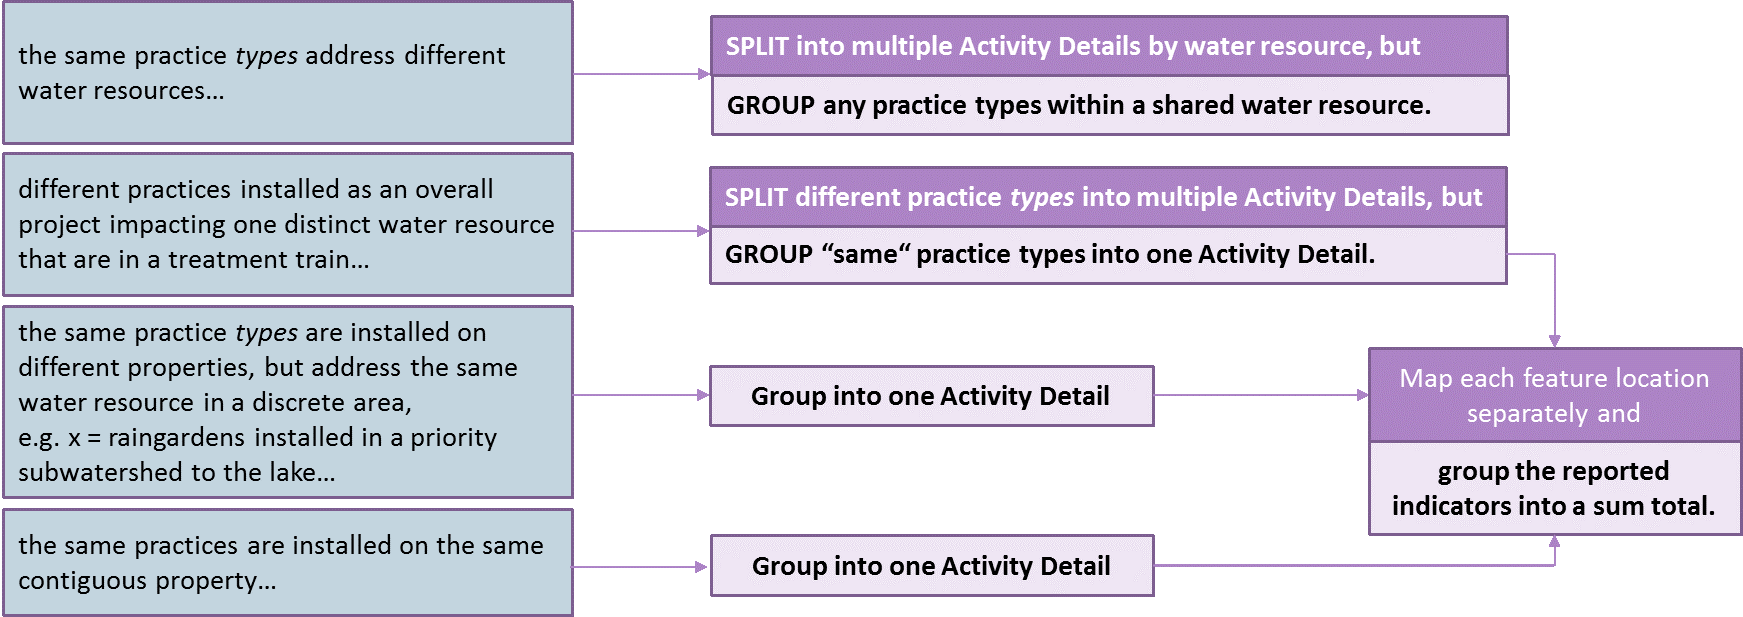 Decision tree for splitting or grouping at Activity Detail level